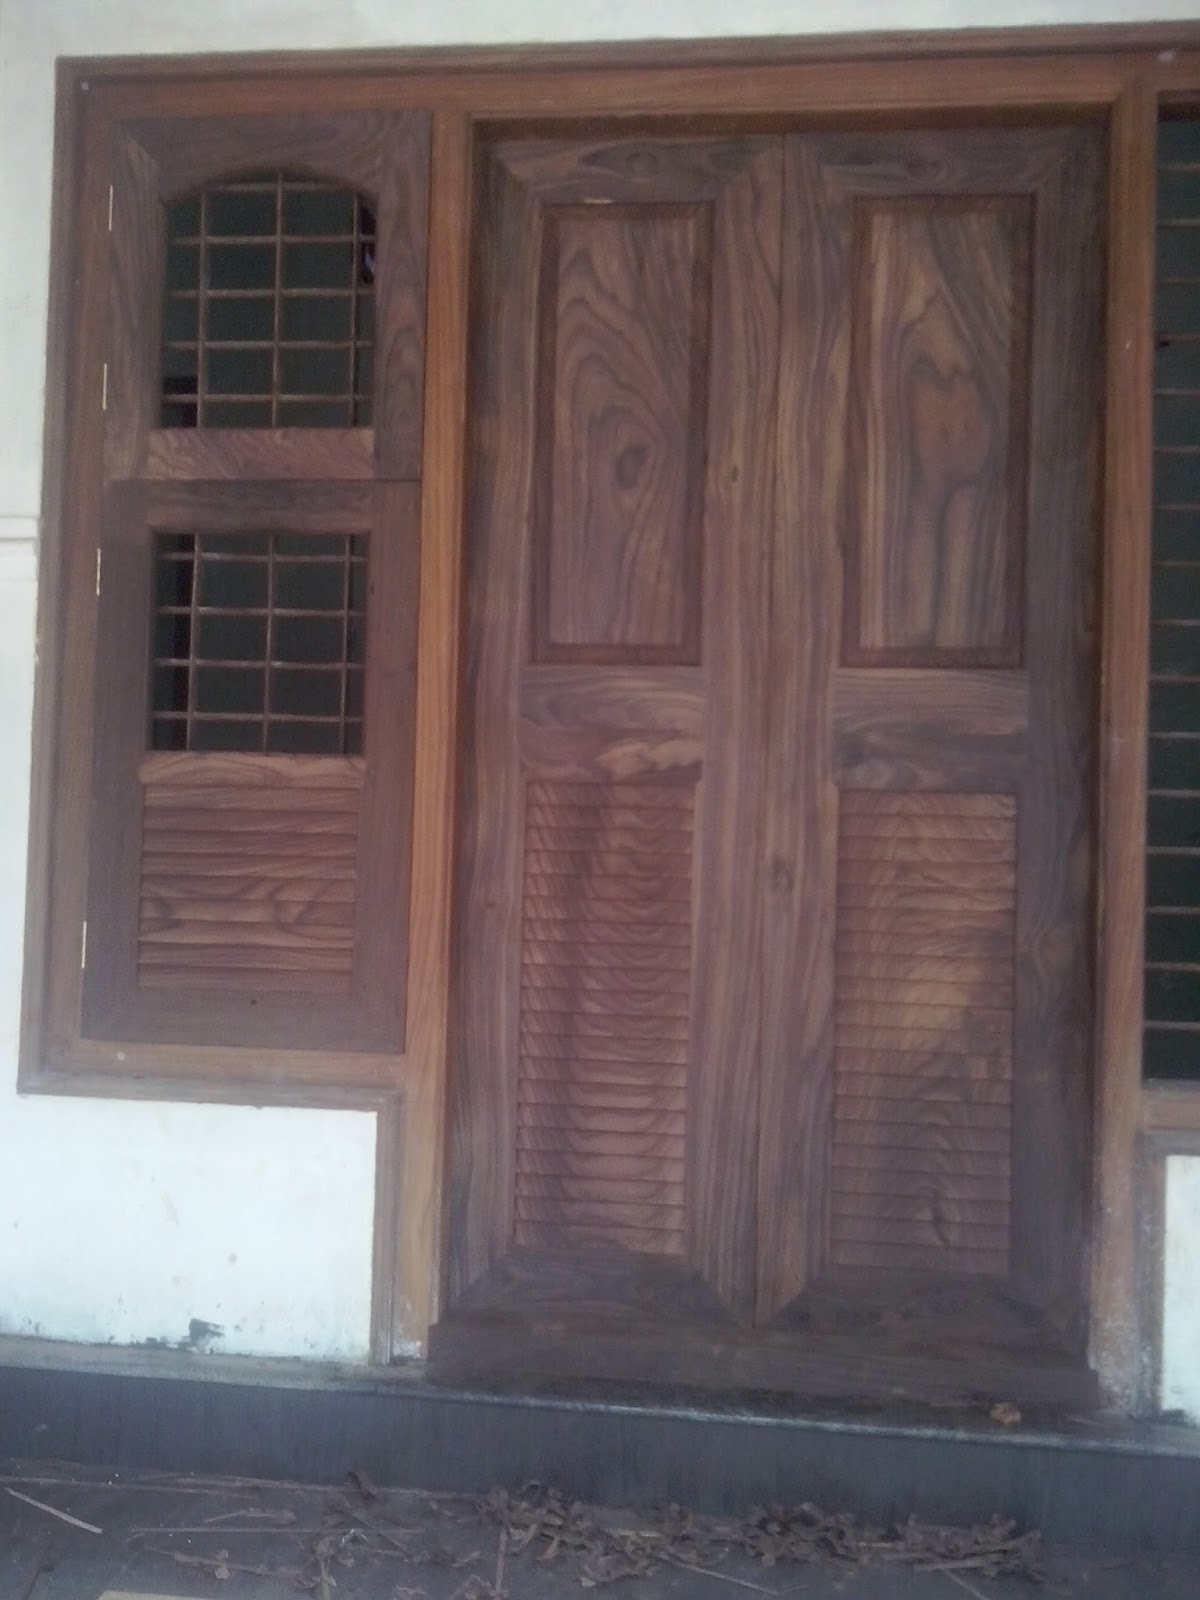 Kerala style carpenter works and designs august 2013 for Front window design in india